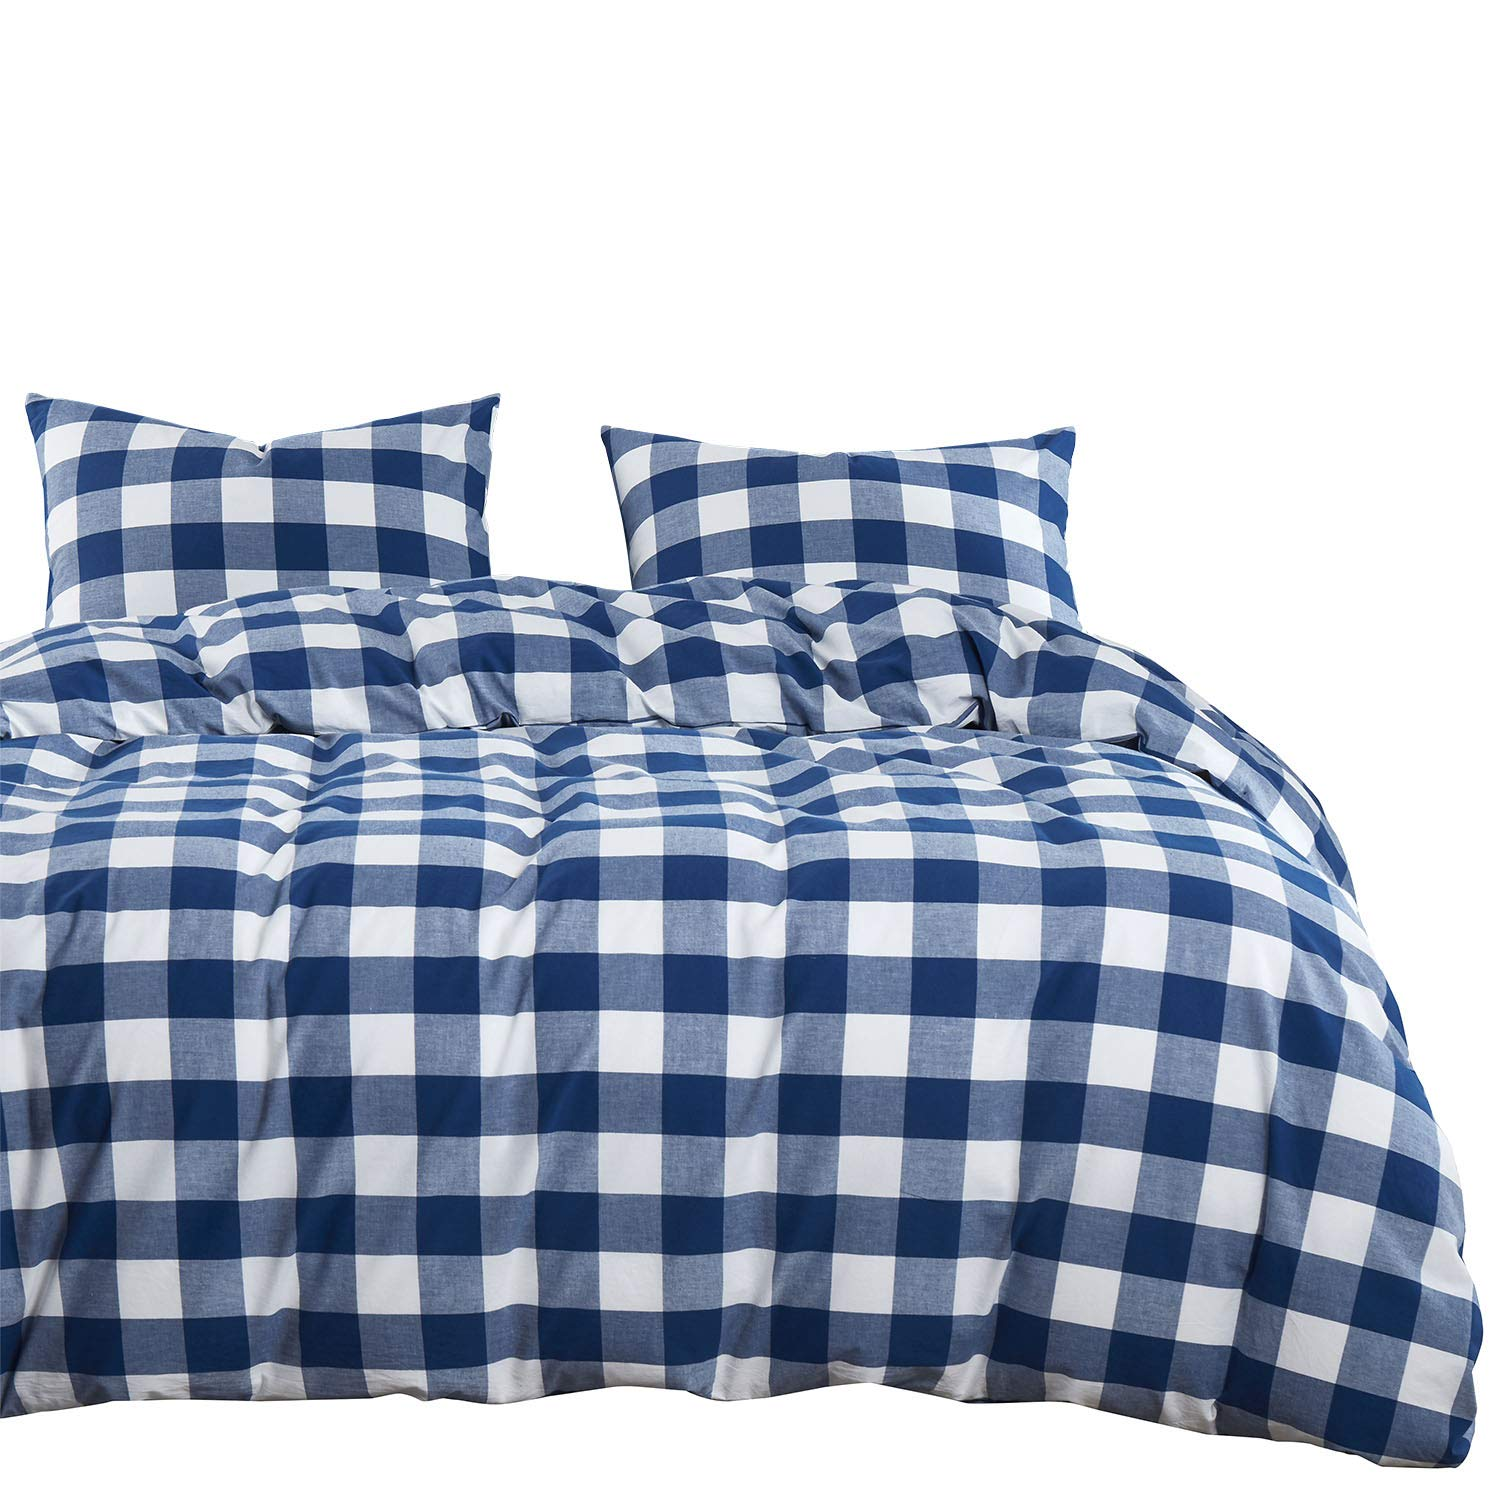 Wake In Cloud - Washed Cotton Duvet Cover Set, Buffalo Check Gingham Plaid Geometric Checker Pattern Printed in Navy Blue White, 100% Cotton Bedding, with Zipper Closure (3pcs, Queen Size)